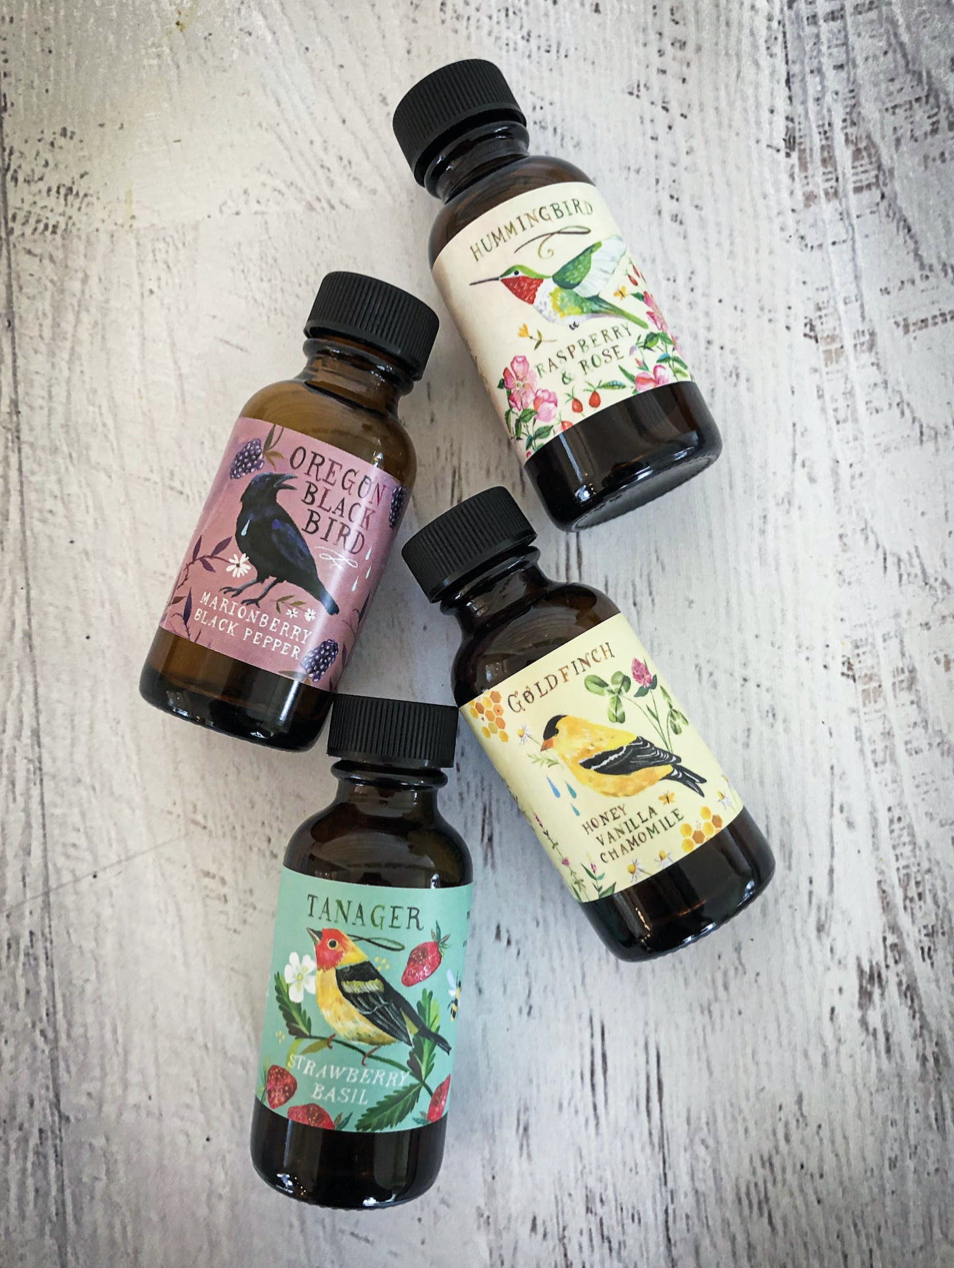 Sweet Bird Collection: Meadowland Simple Syrup Sampler